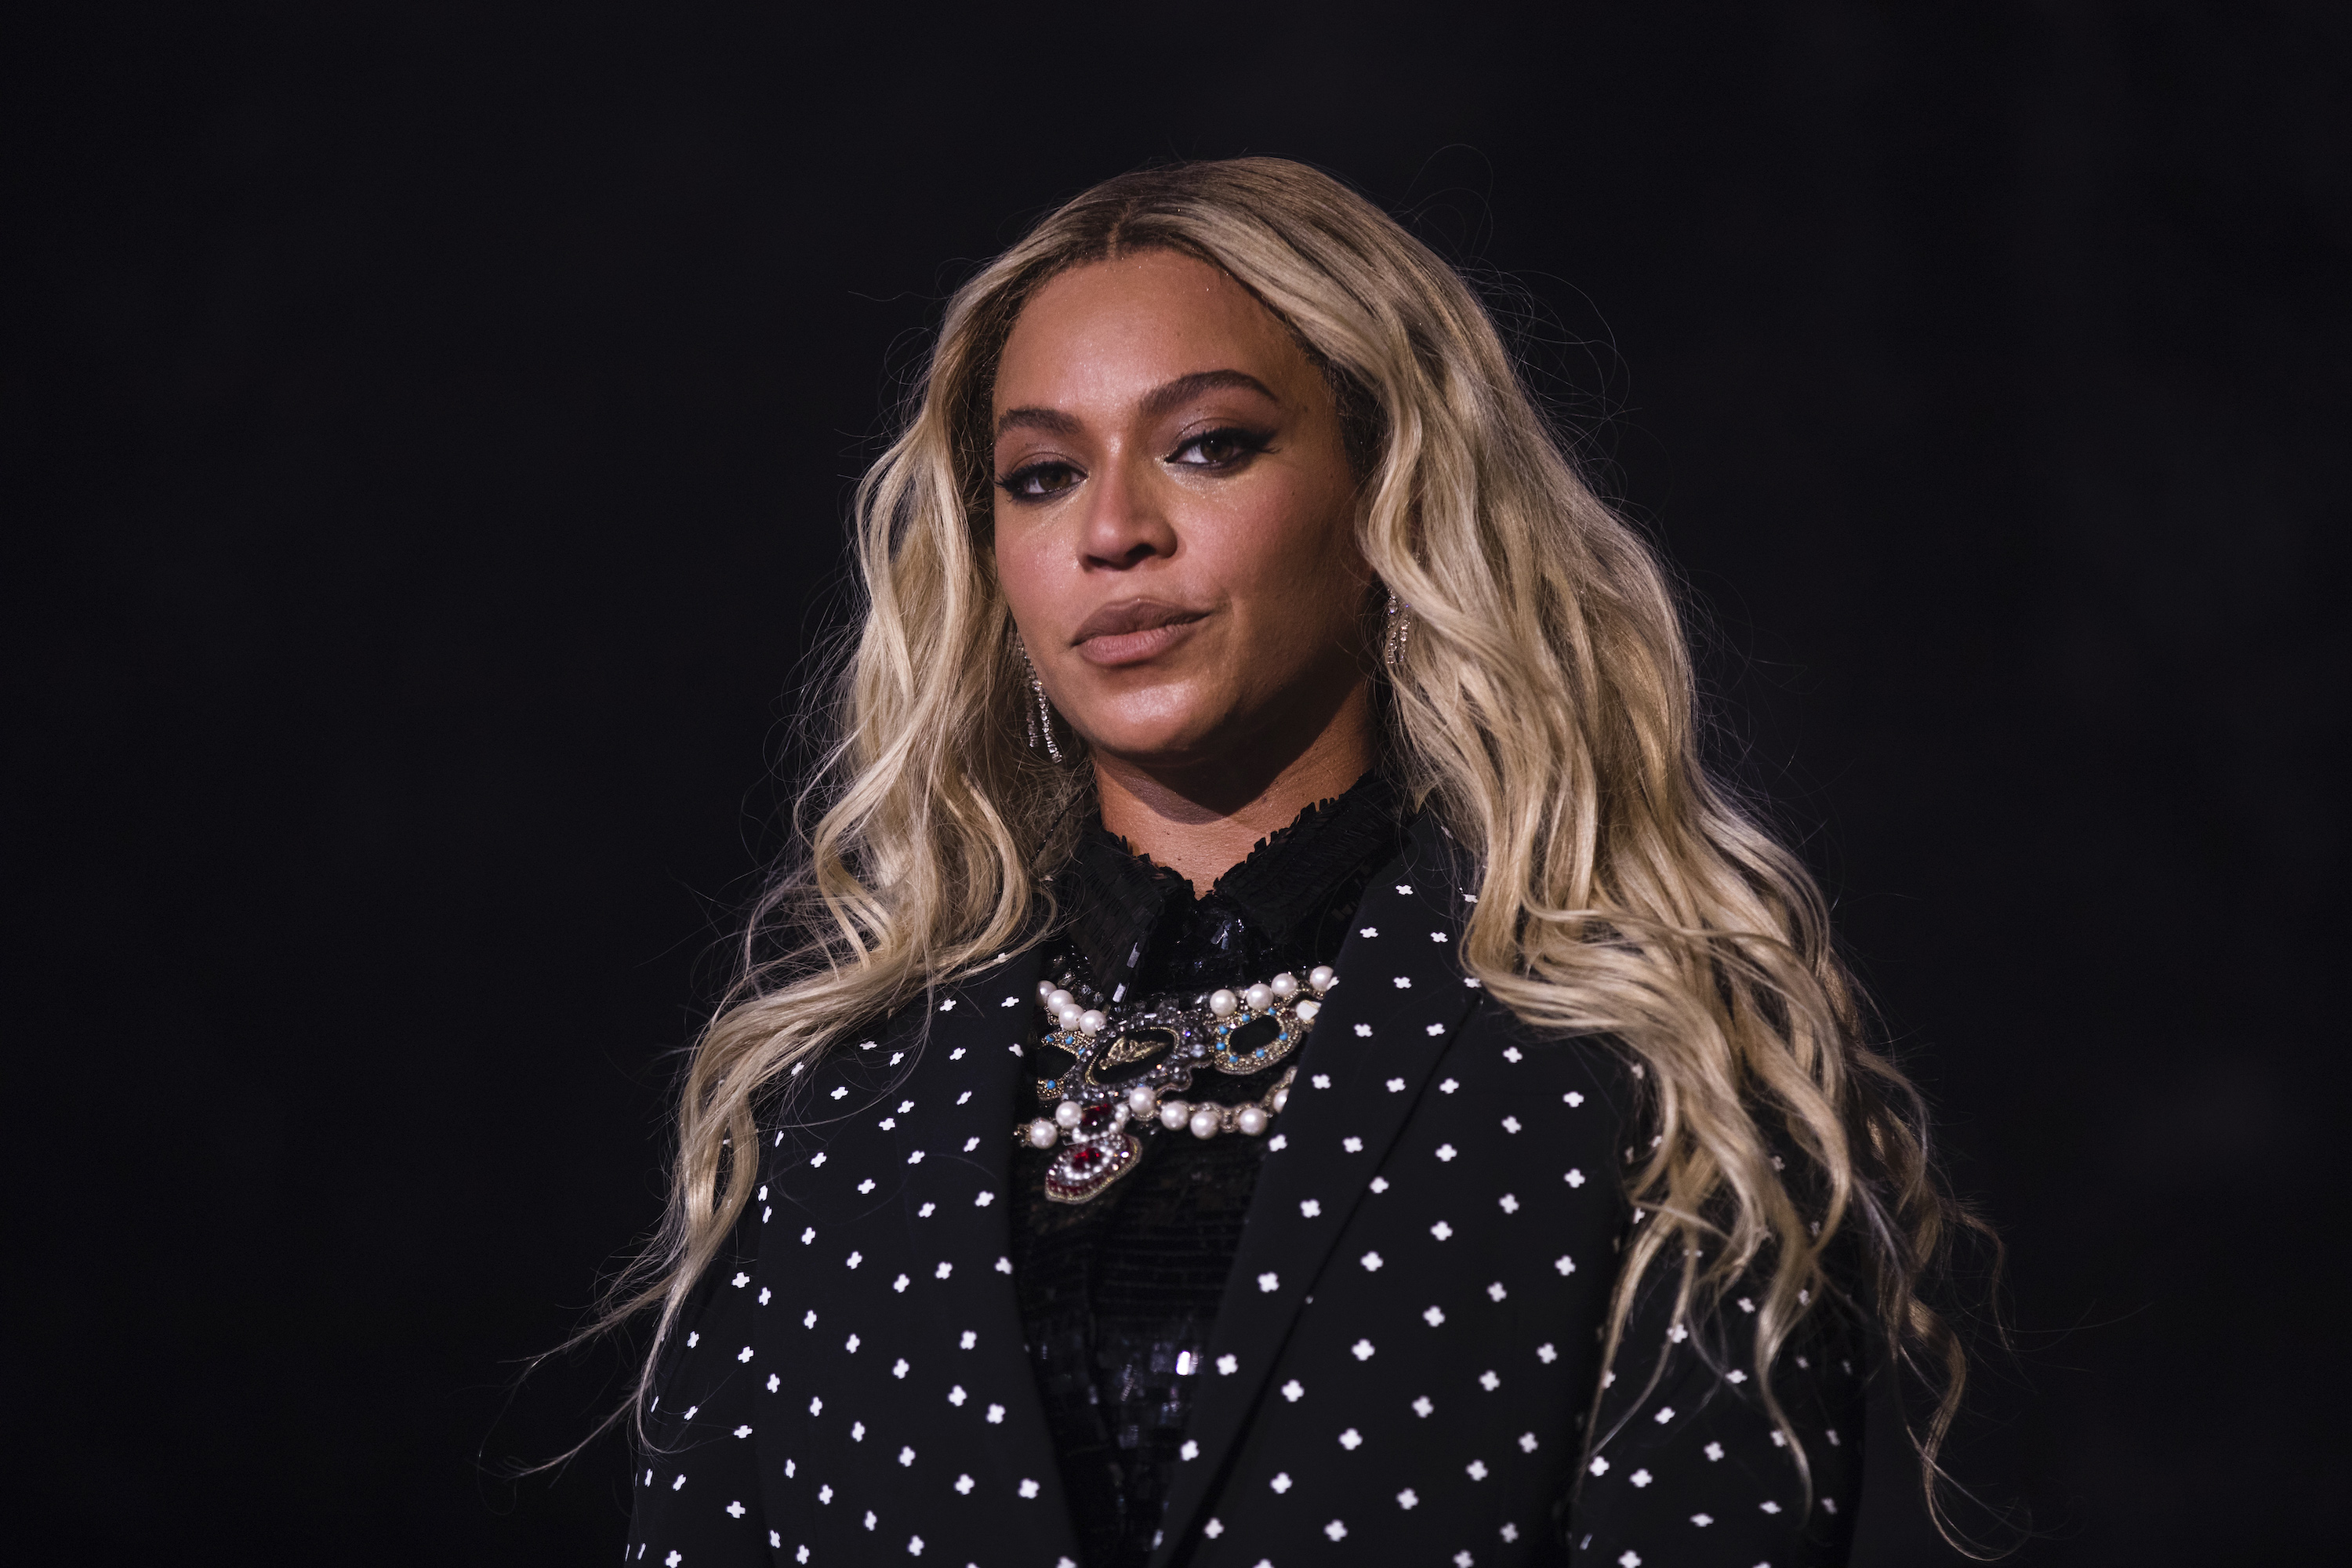 Beyonce performs at a concert for Democratic Presidential candidate Hillary Clinton, Nov. 4, 2016 in Cleveland, Ohio.